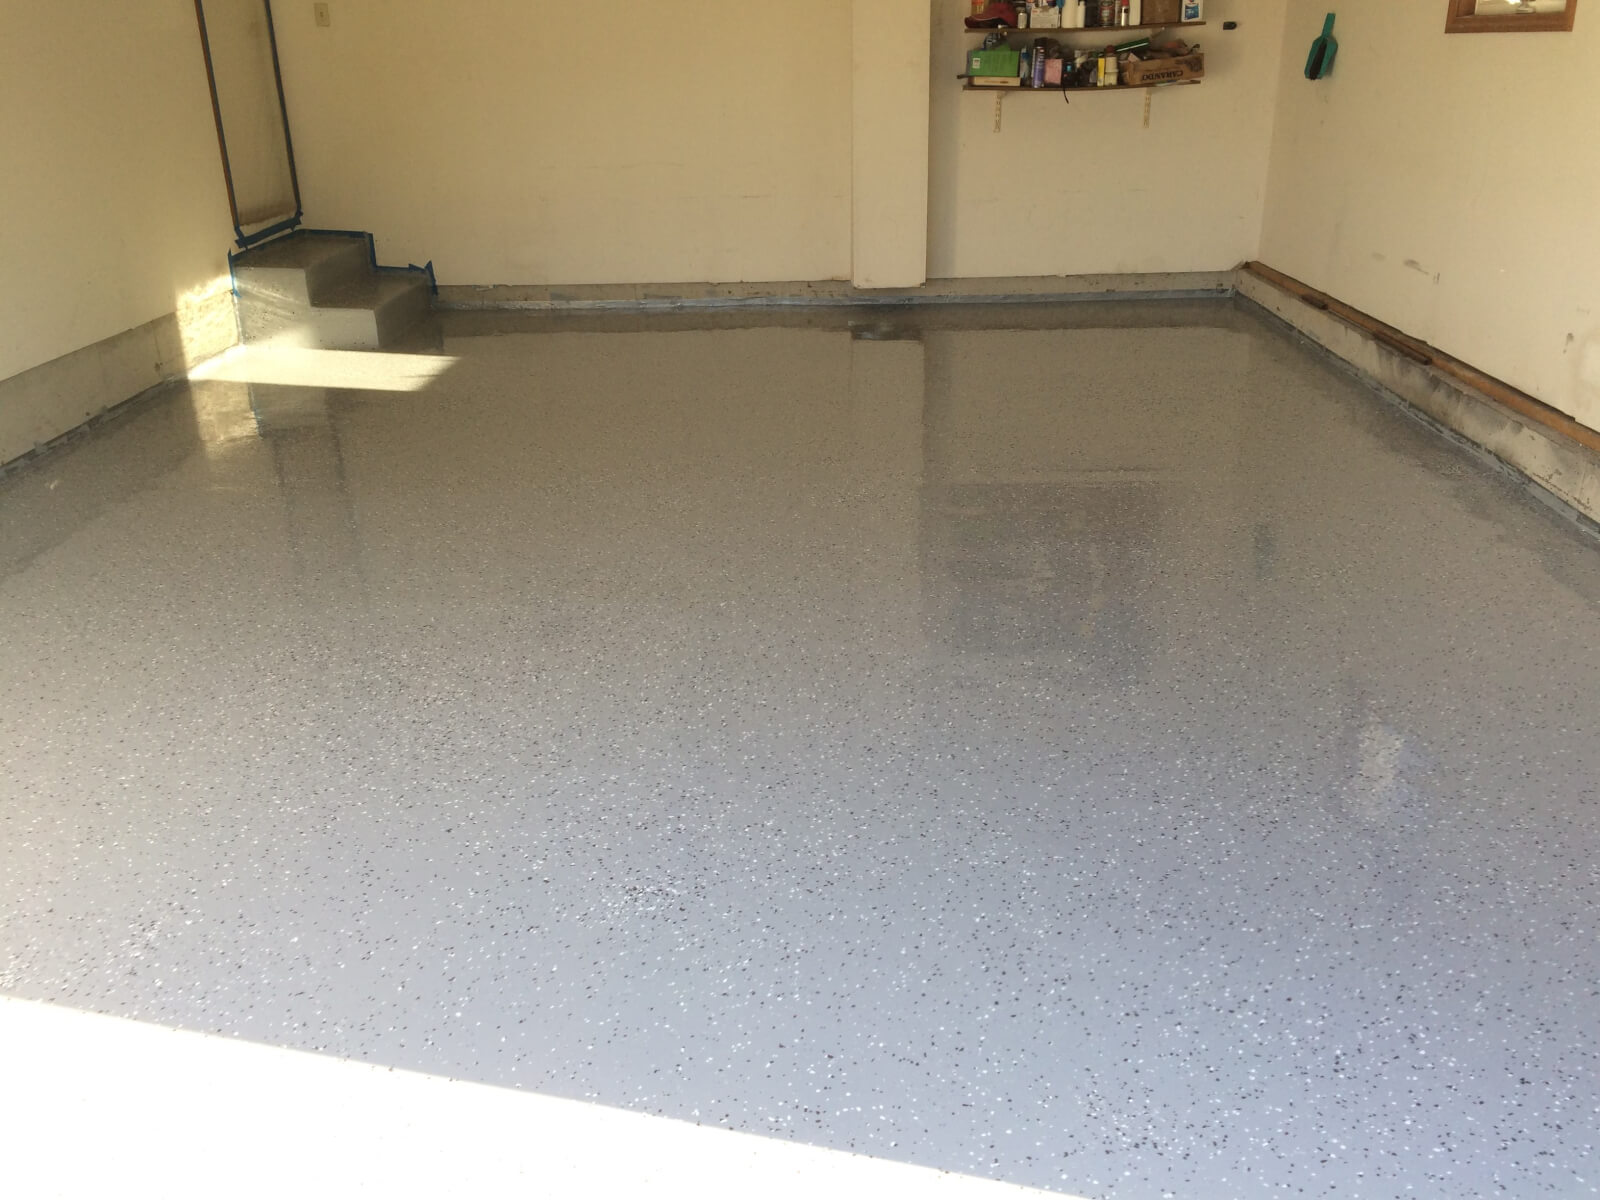 Epoxy Garage Floor Expansion Joints What To Know About Garage Floor Coatings Justin S Brain Dump